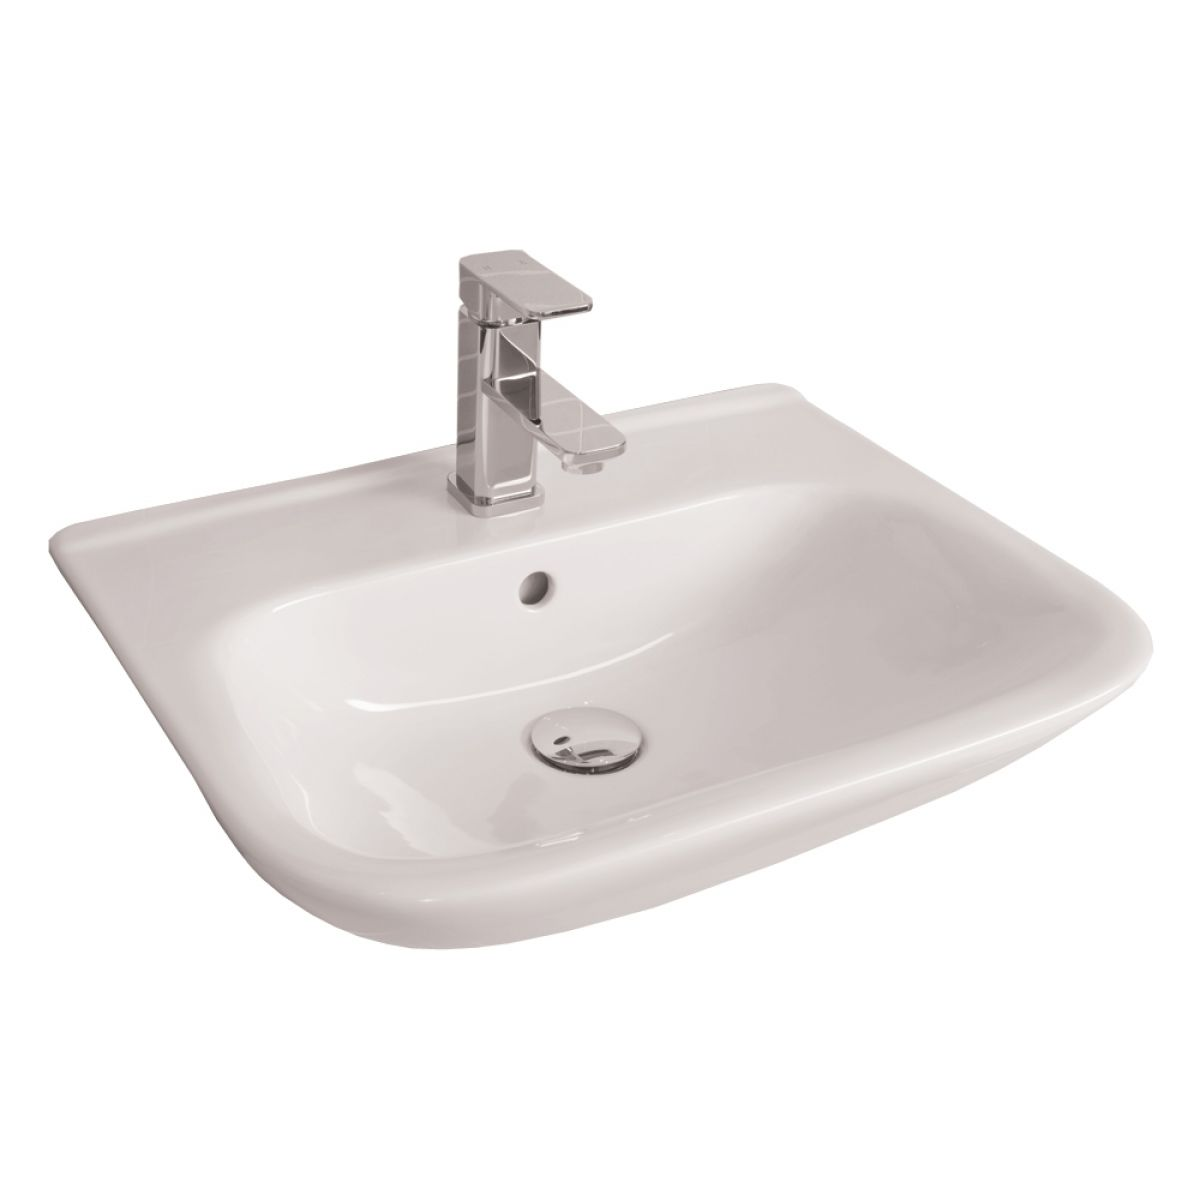 RAK Origin 62 1 Tap Hole Semi Recessed Basin 520mm